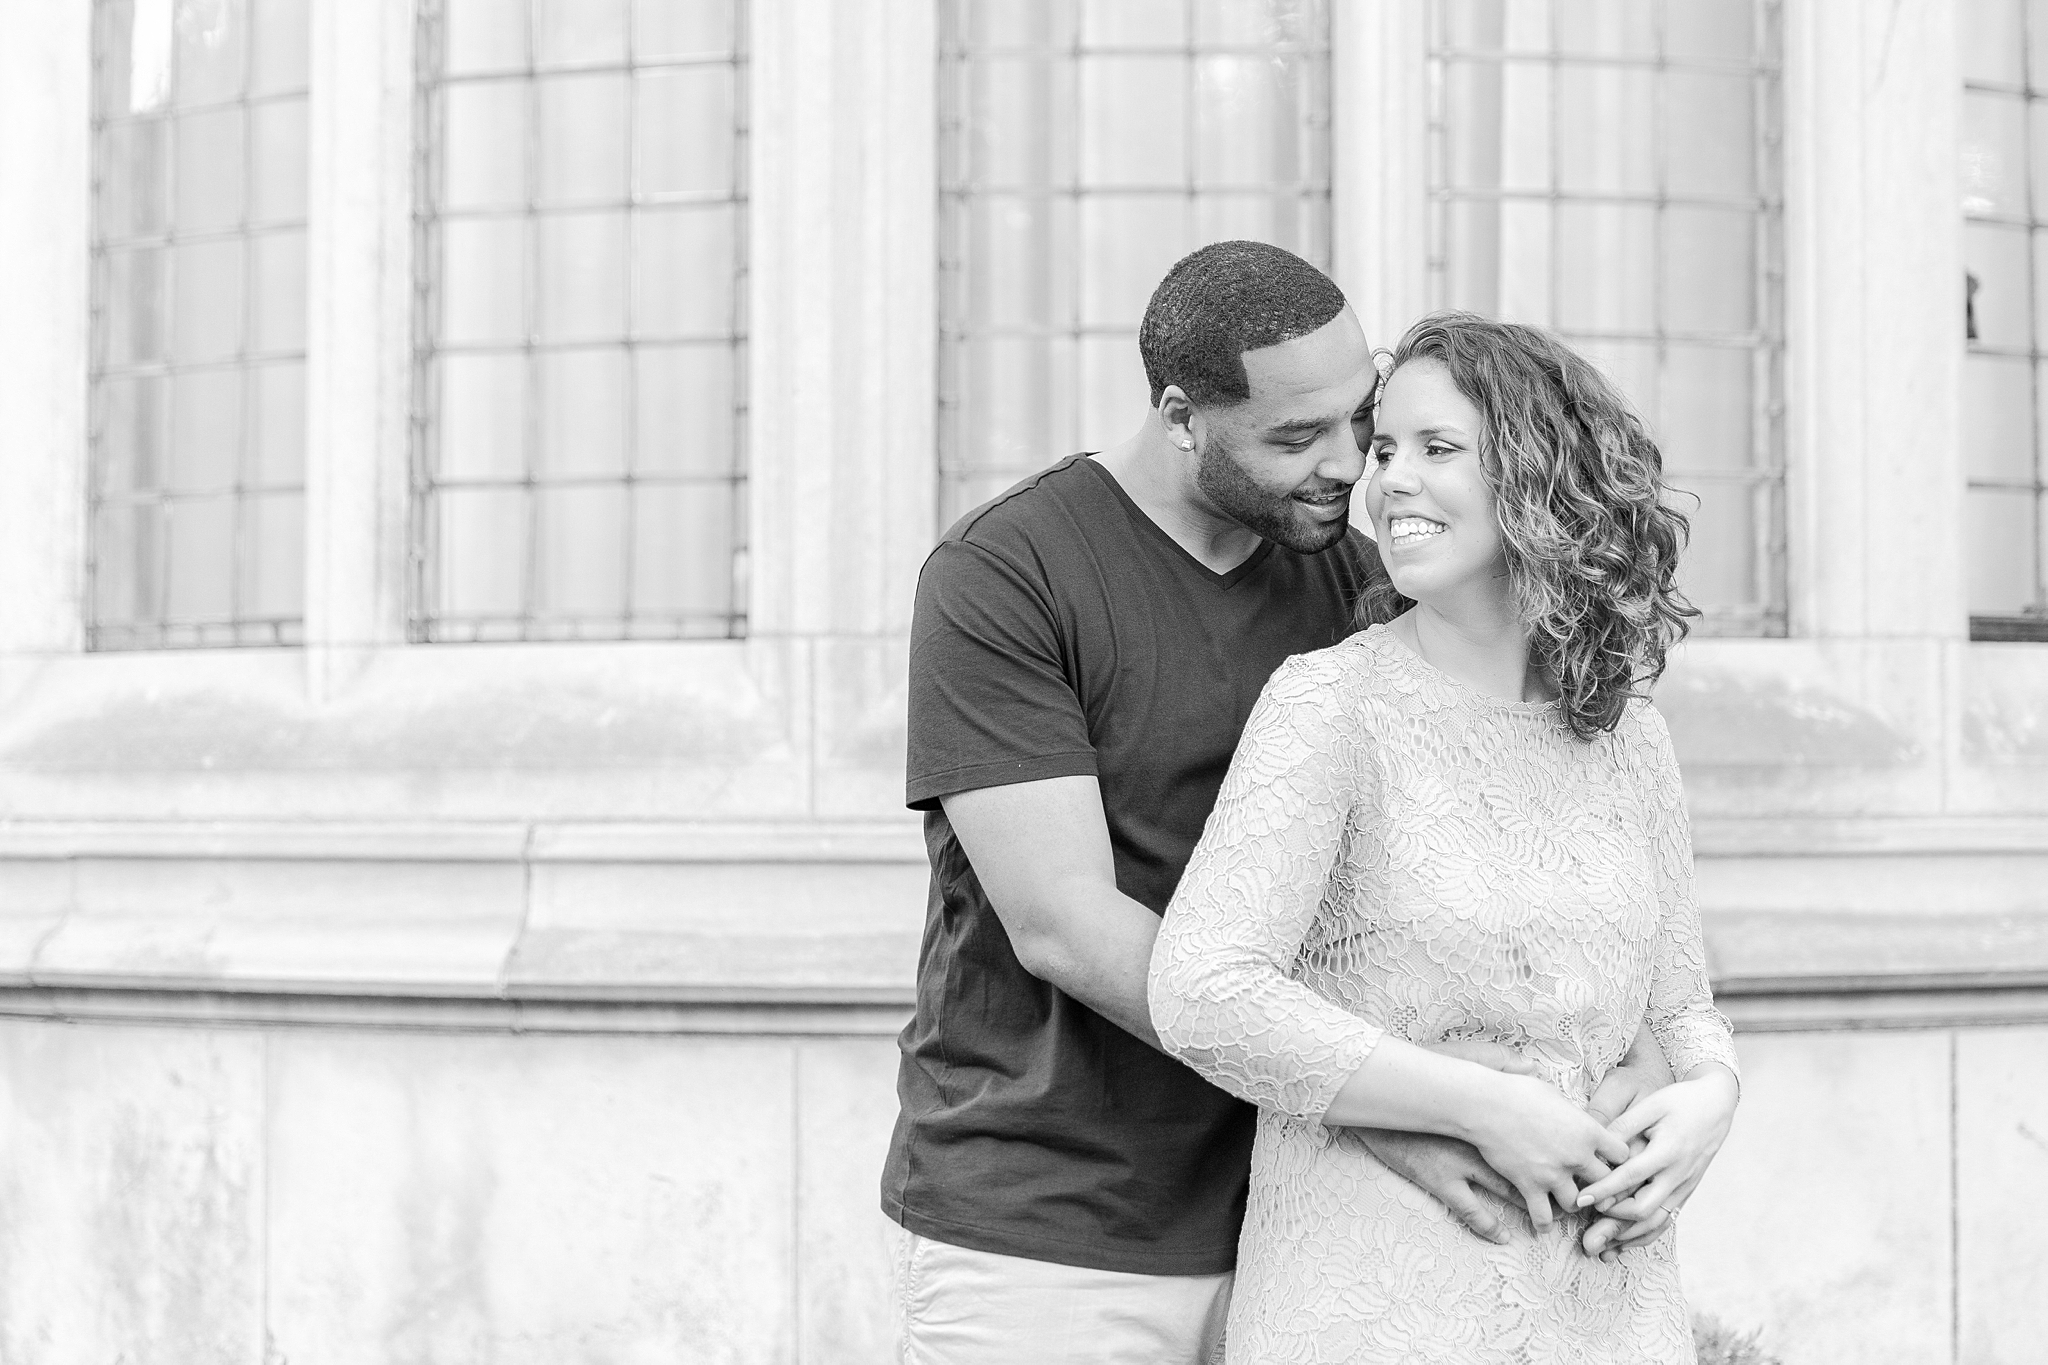 joyful-college-campus-engagement-photography-at-university-of-michigan-in-ann-arbor-mi-by-courtney-carolyn-photography_0022.jpg